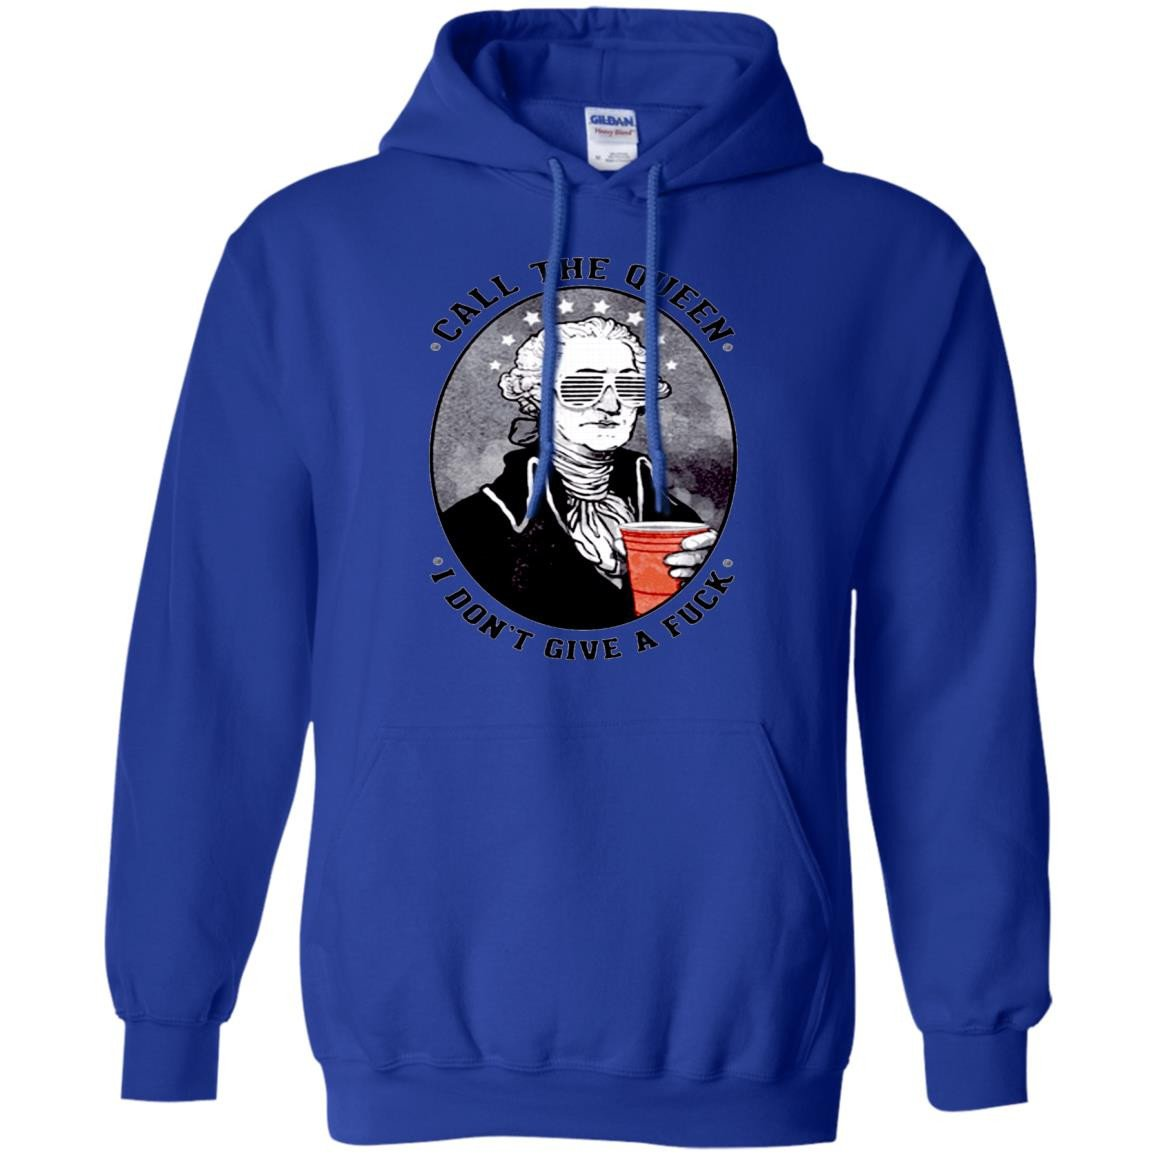 America Shirts CALL THE QUEEN I DON'T GIVE A FUCK T-shirts Hoodies Sweatshirts